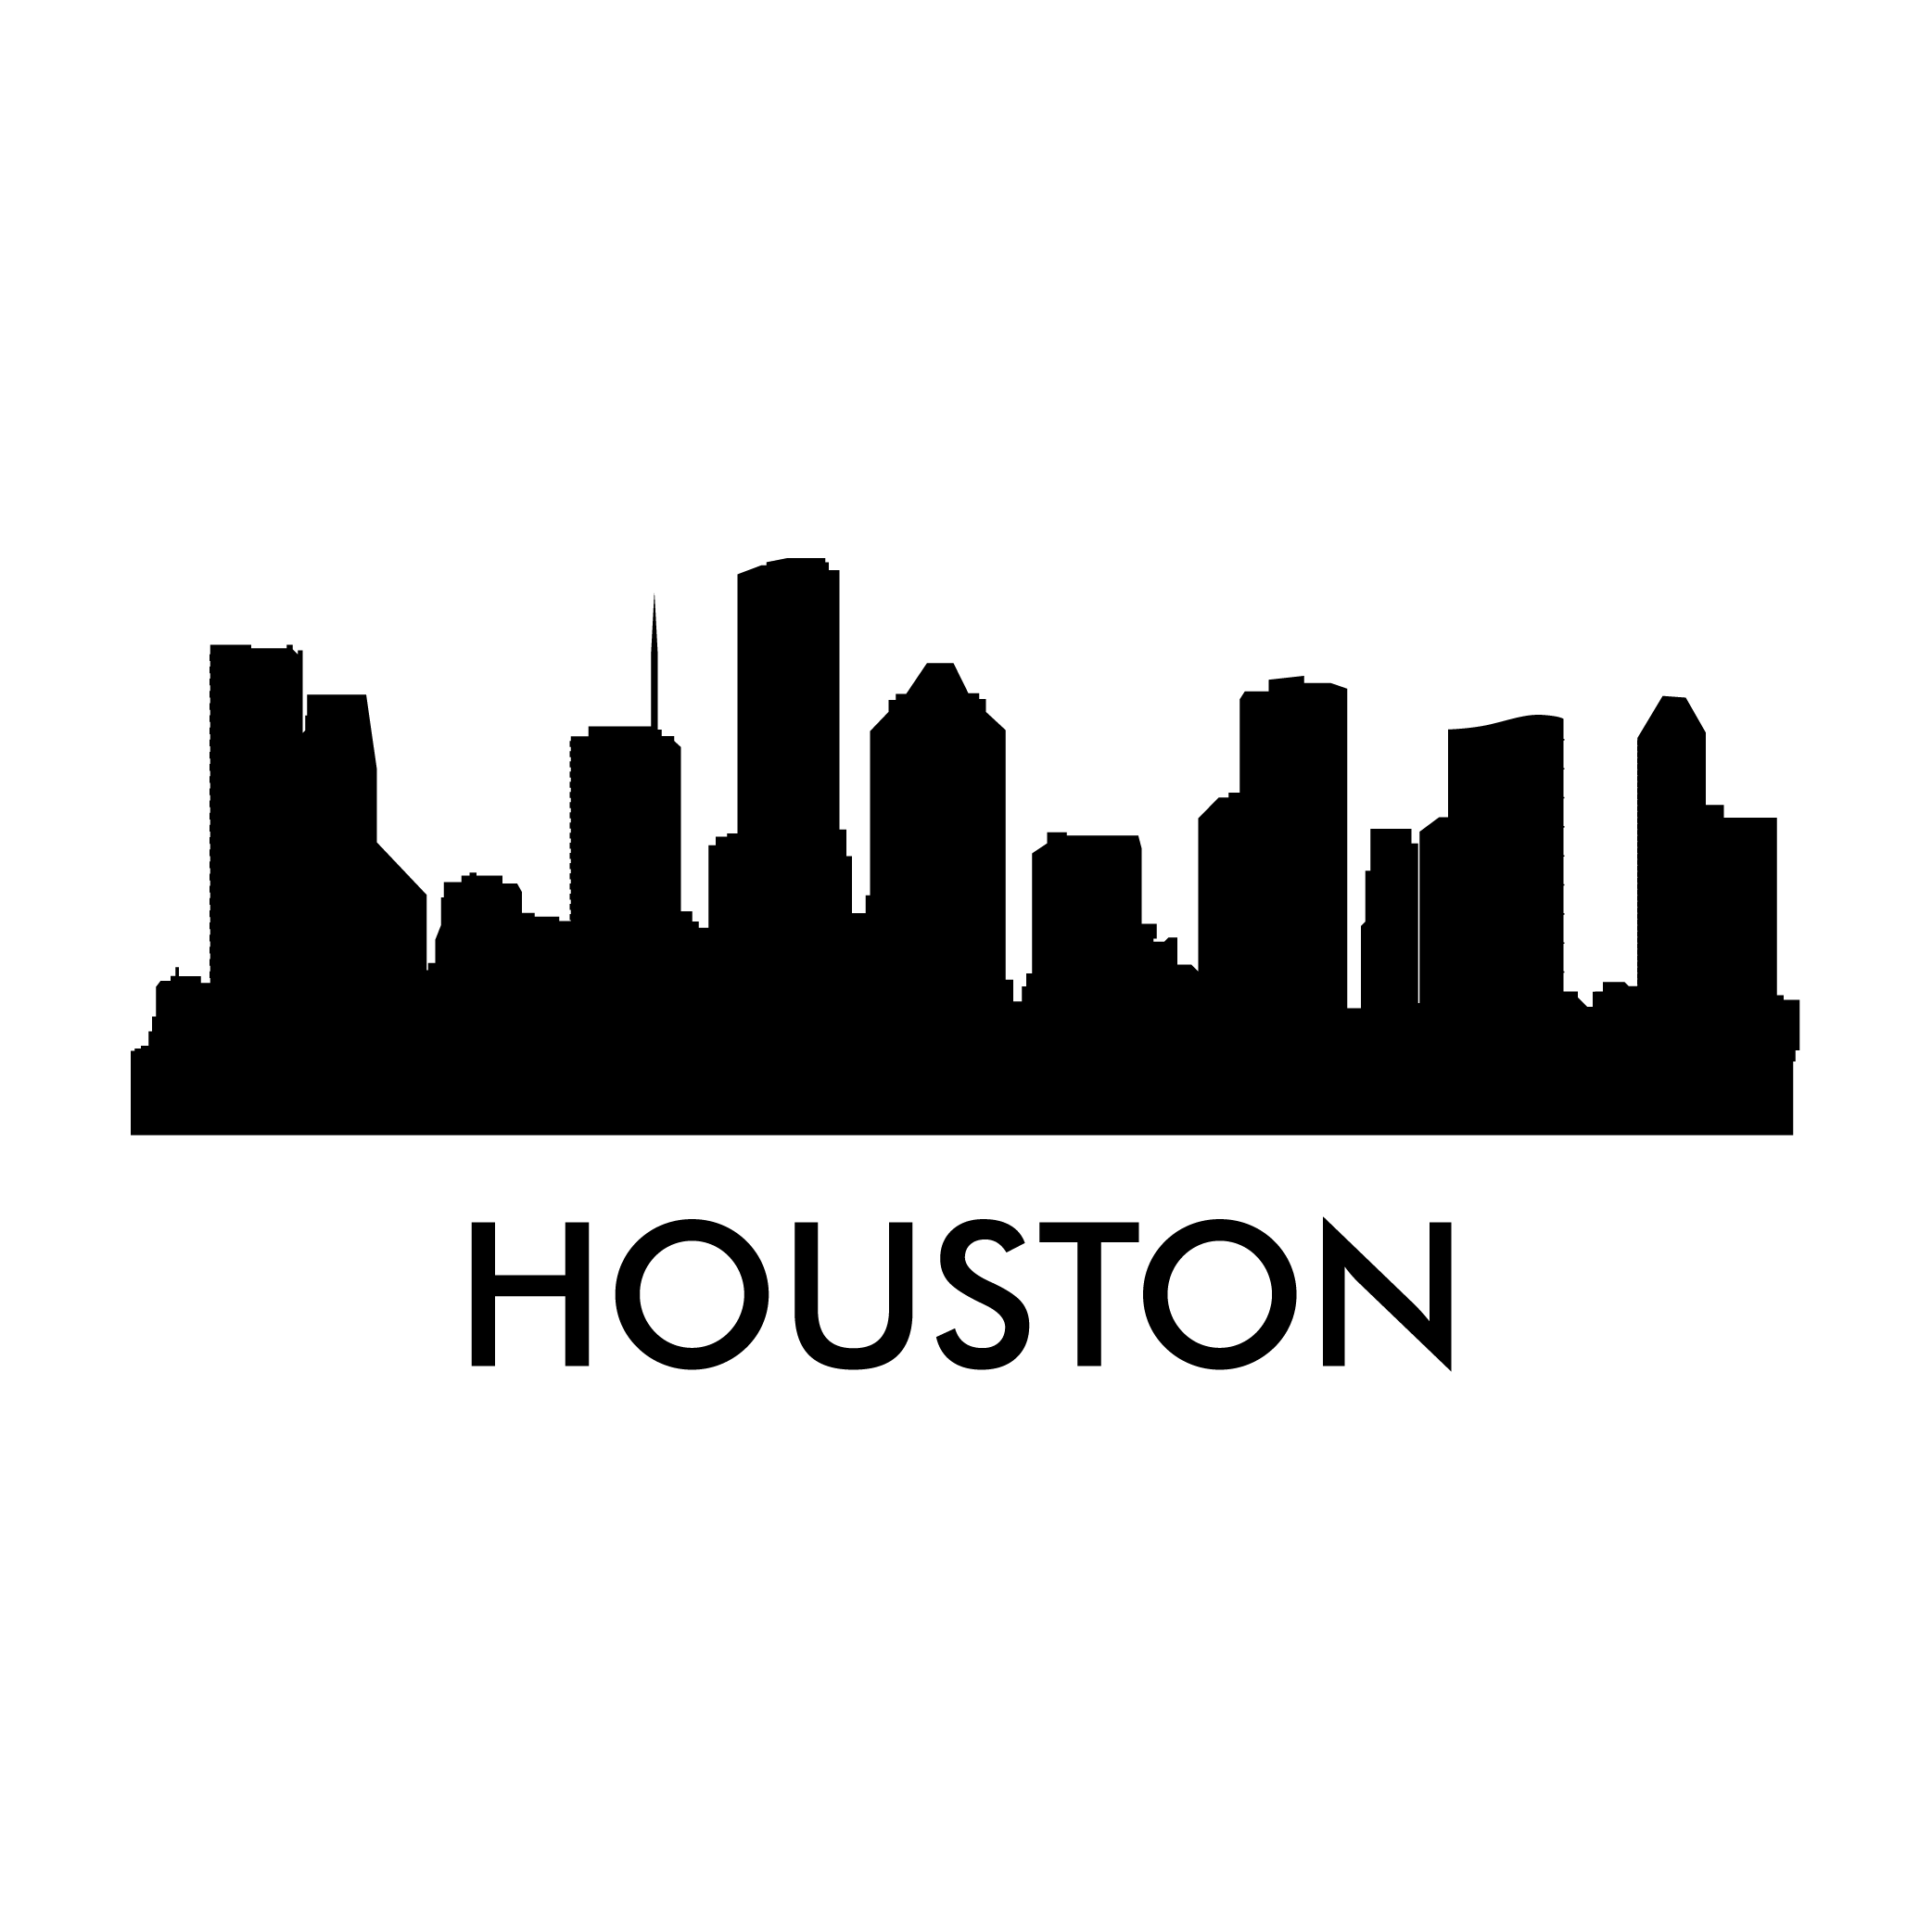 Houston skyline outline png. Decal photomal com